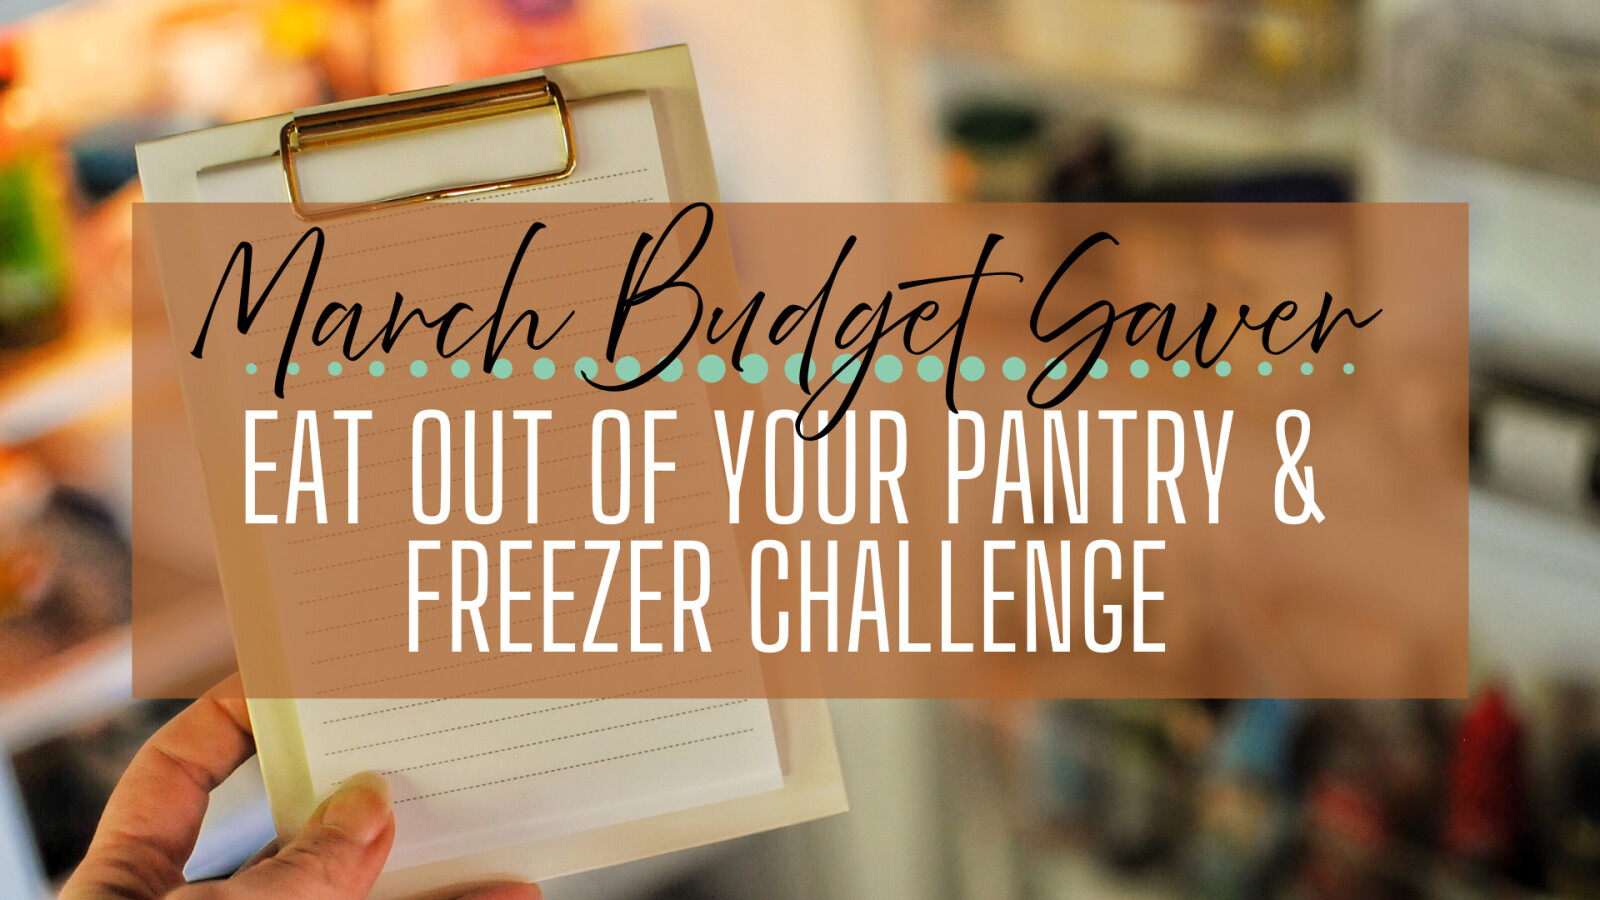 5 Steps to Prepare for the Eat out of Your Pantry & Freezer Challenge